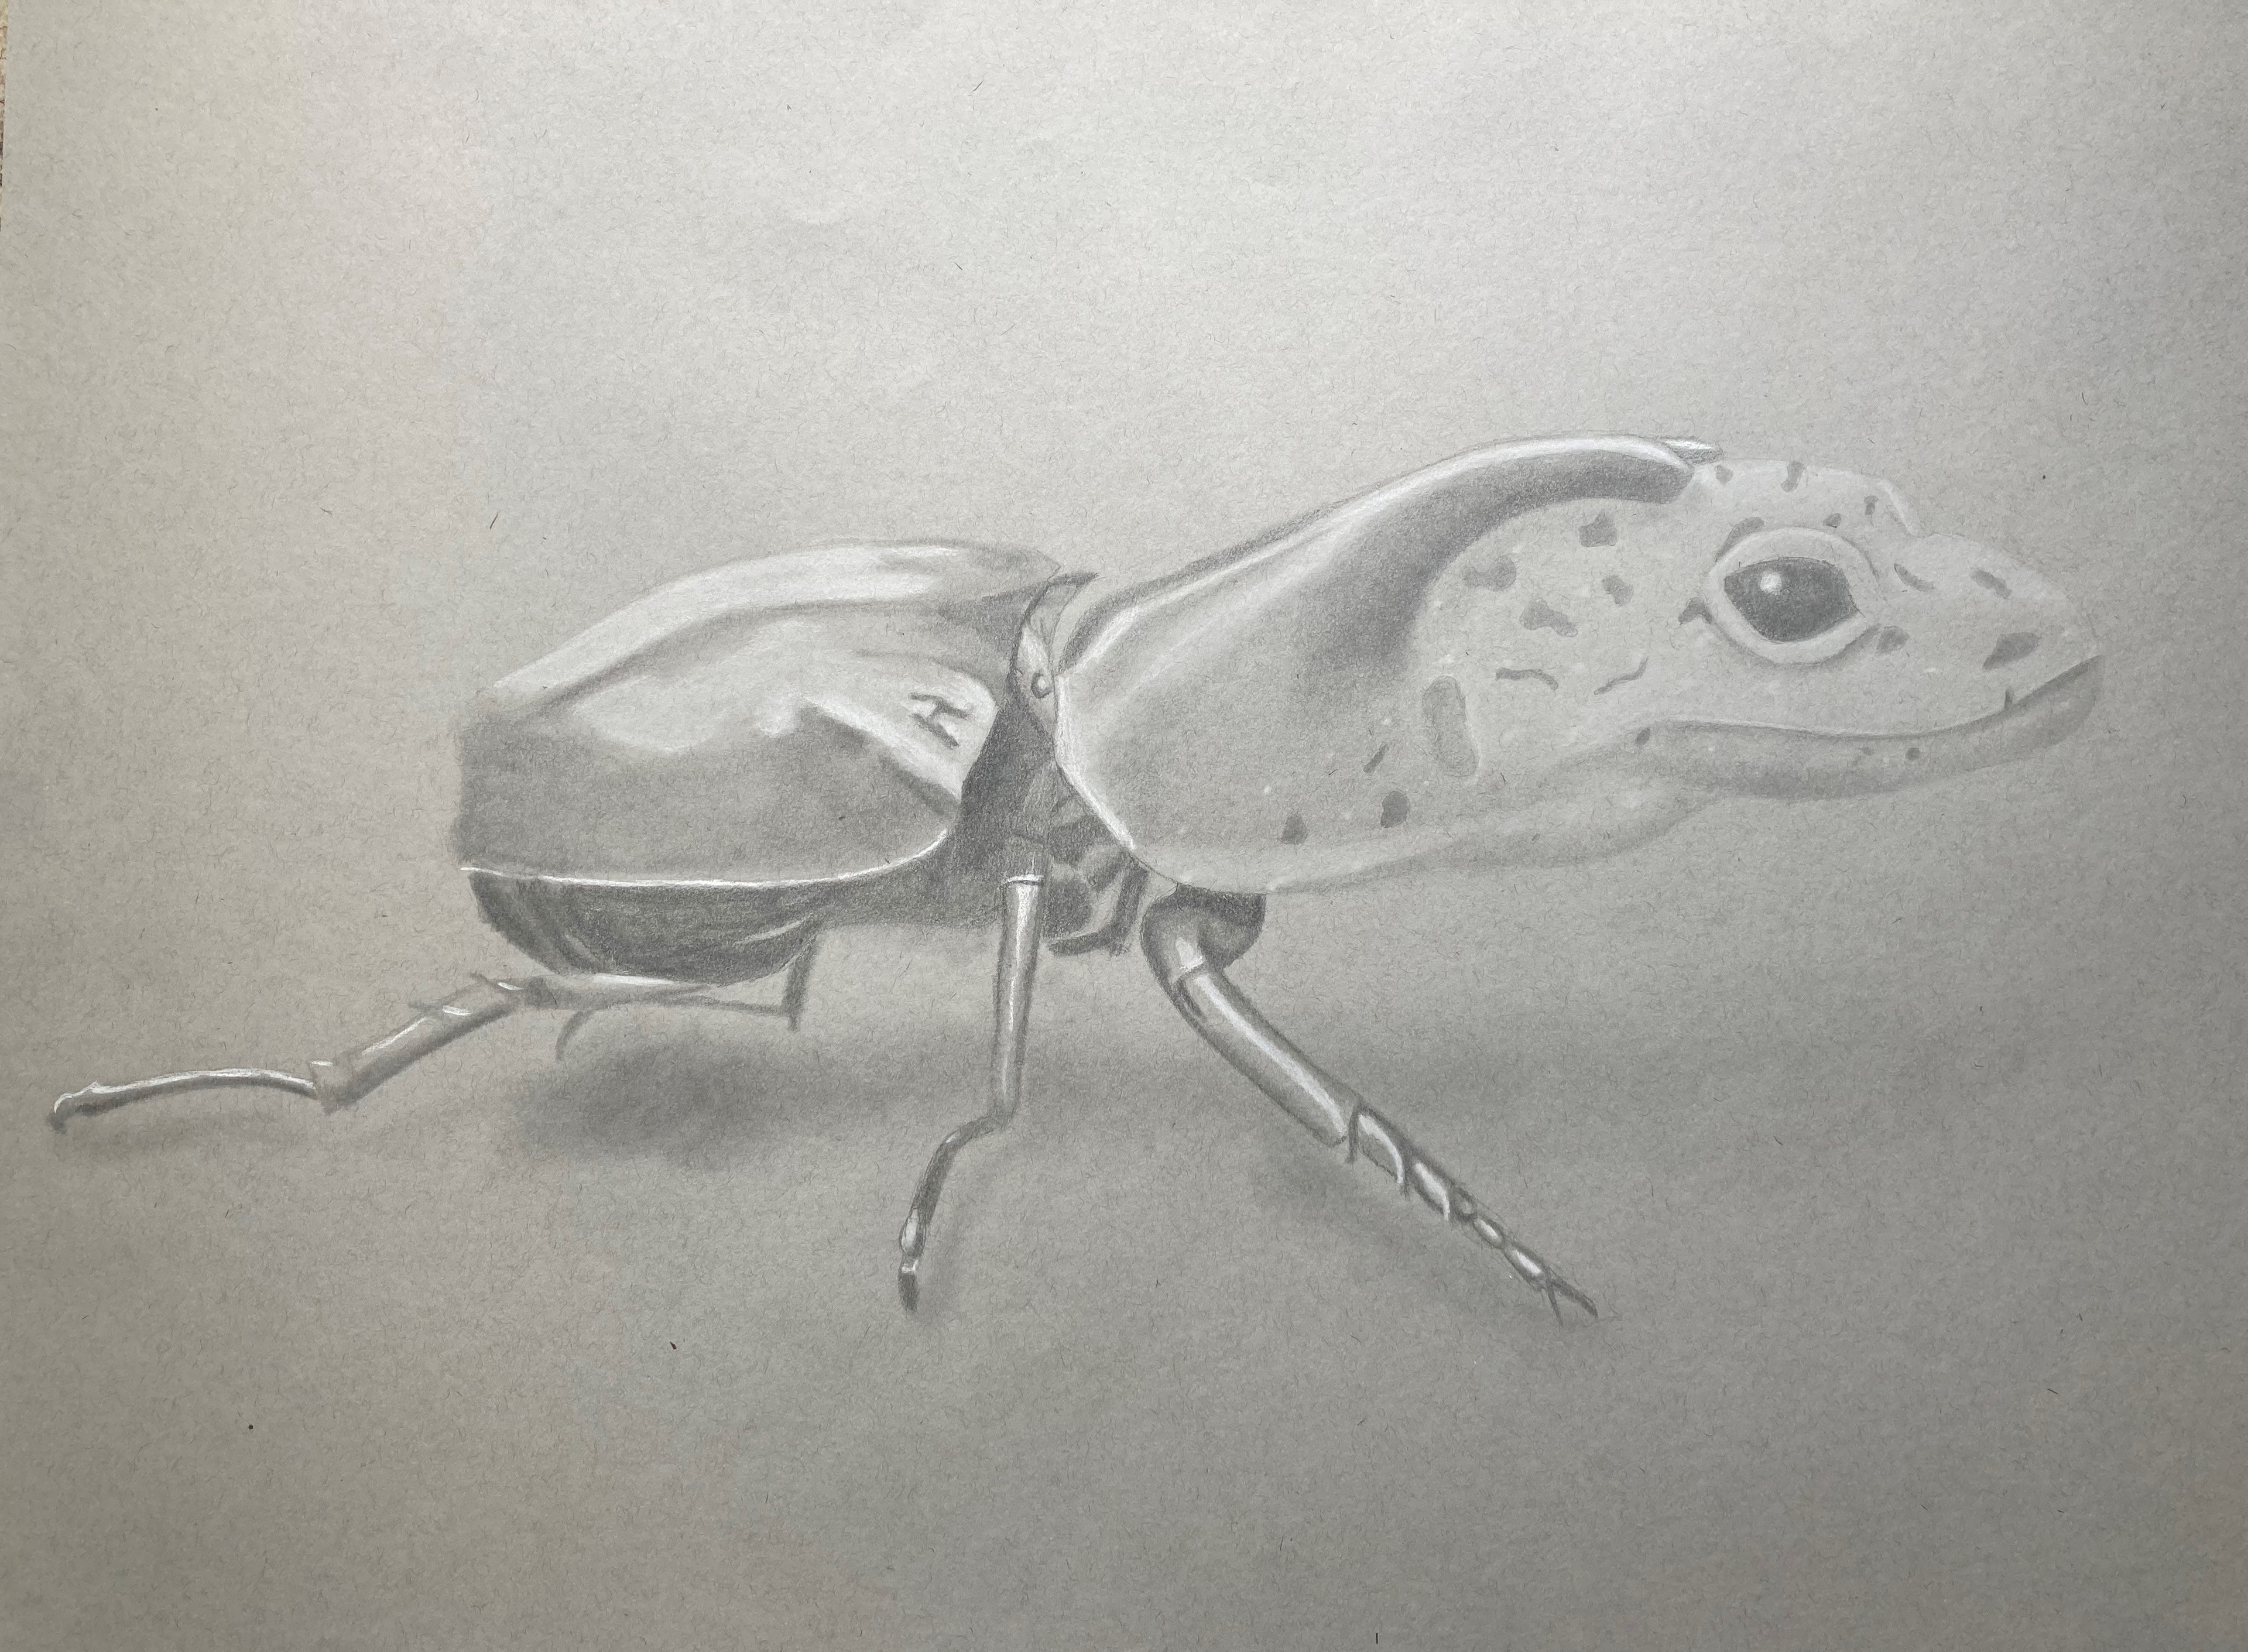 Morph of a beetle and gecko.